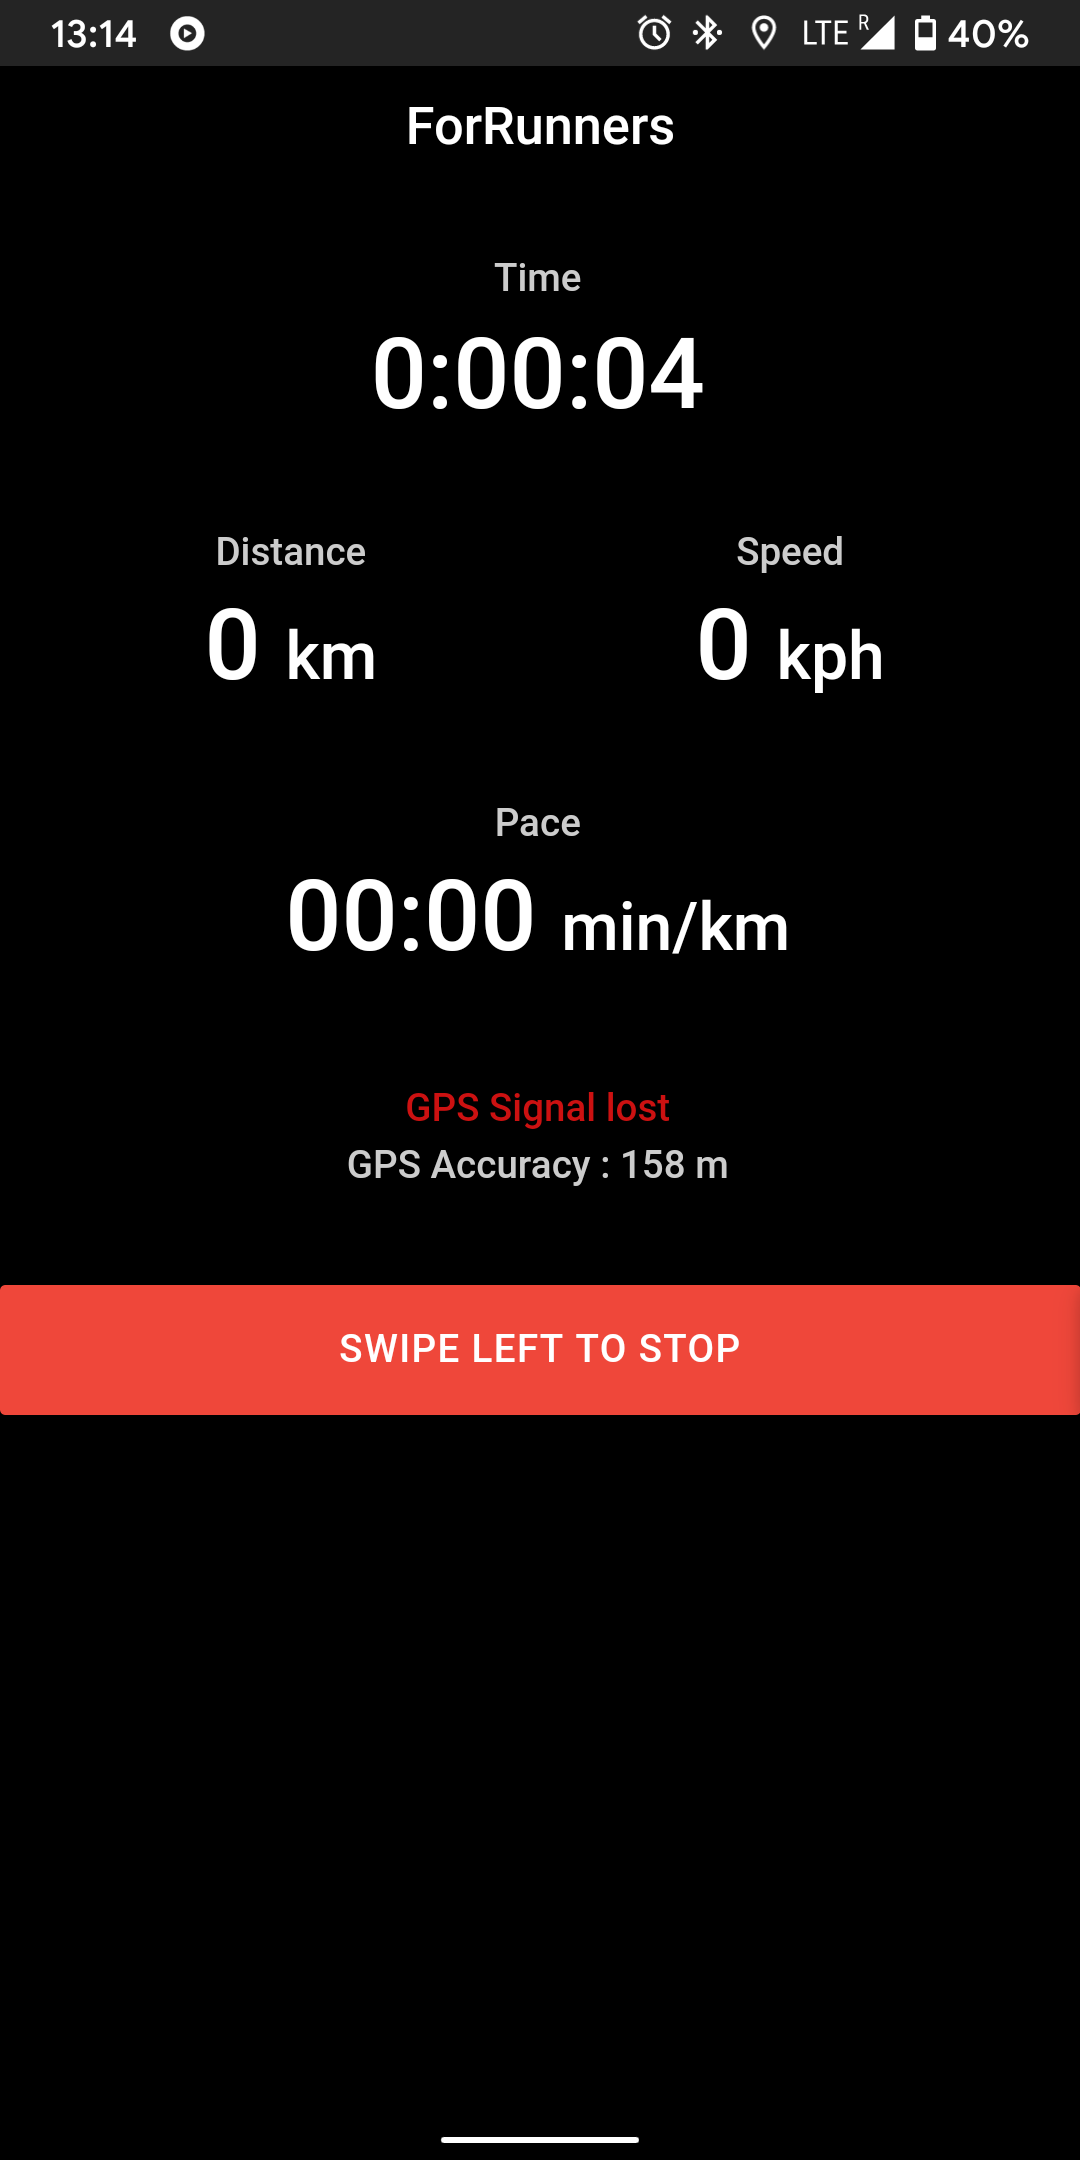 forRunner run tracker interface with GPS